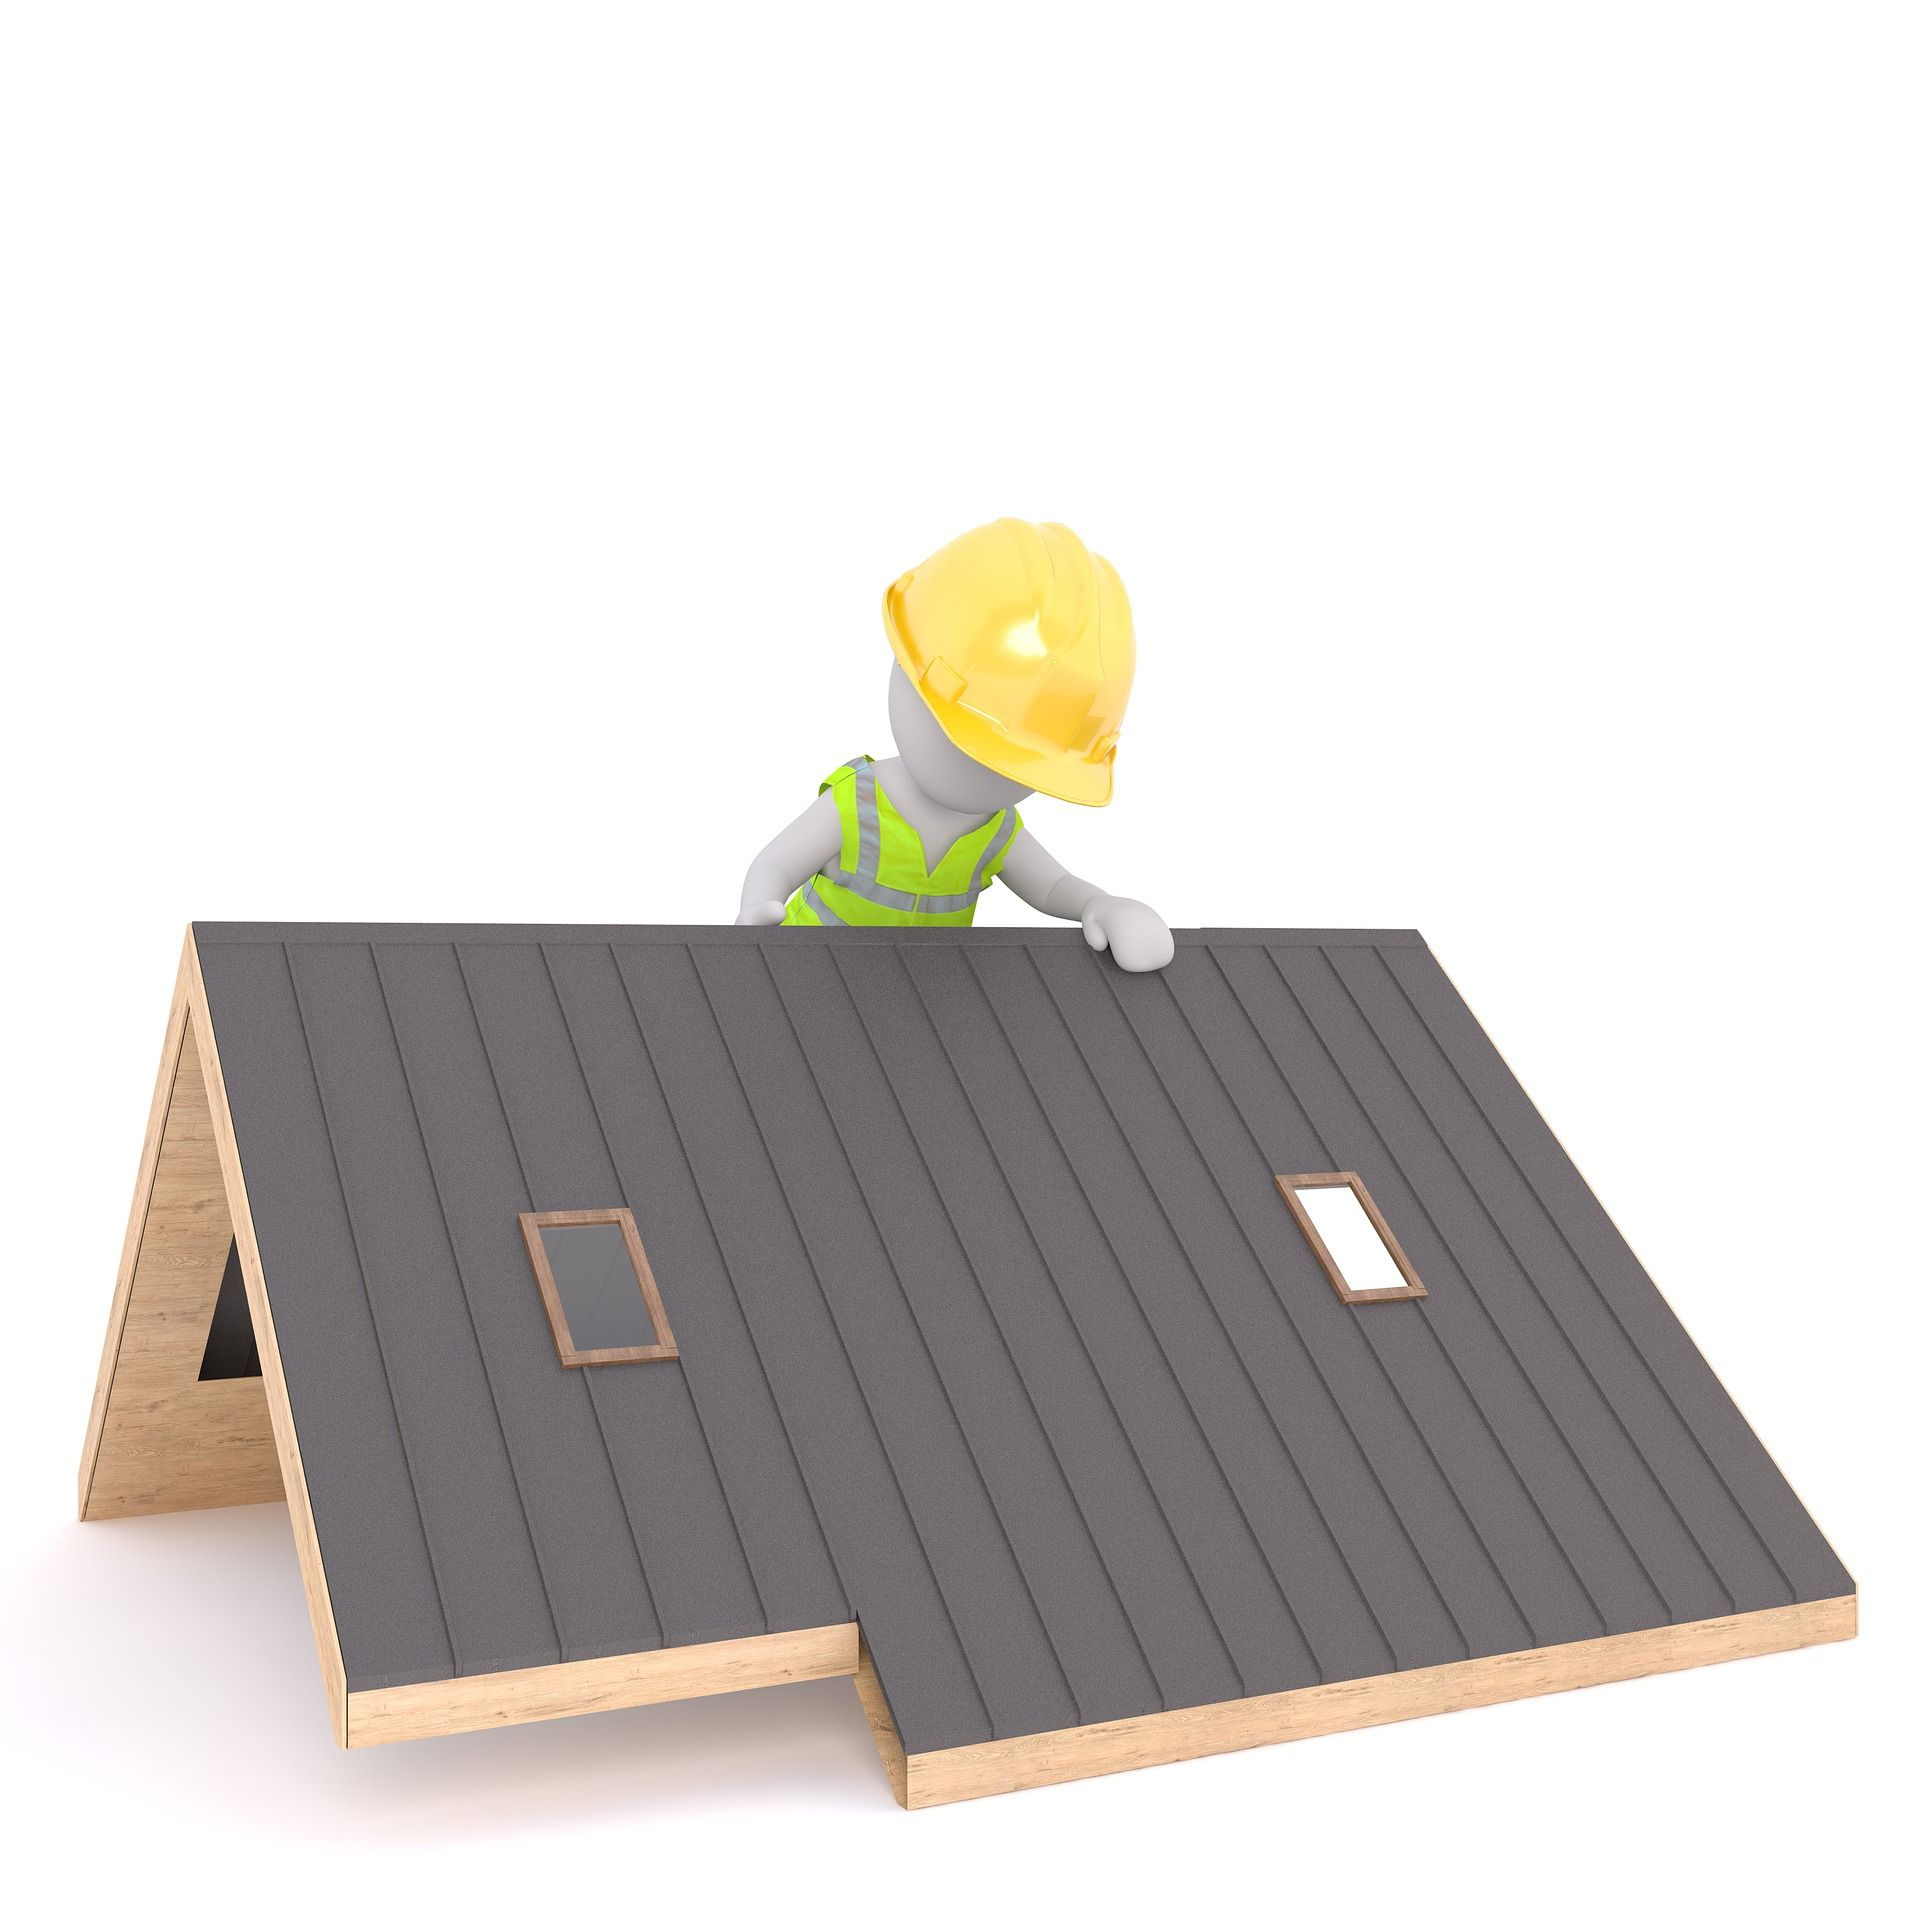 How Often To Replace Roof? | Roofing companies, Roofing ...